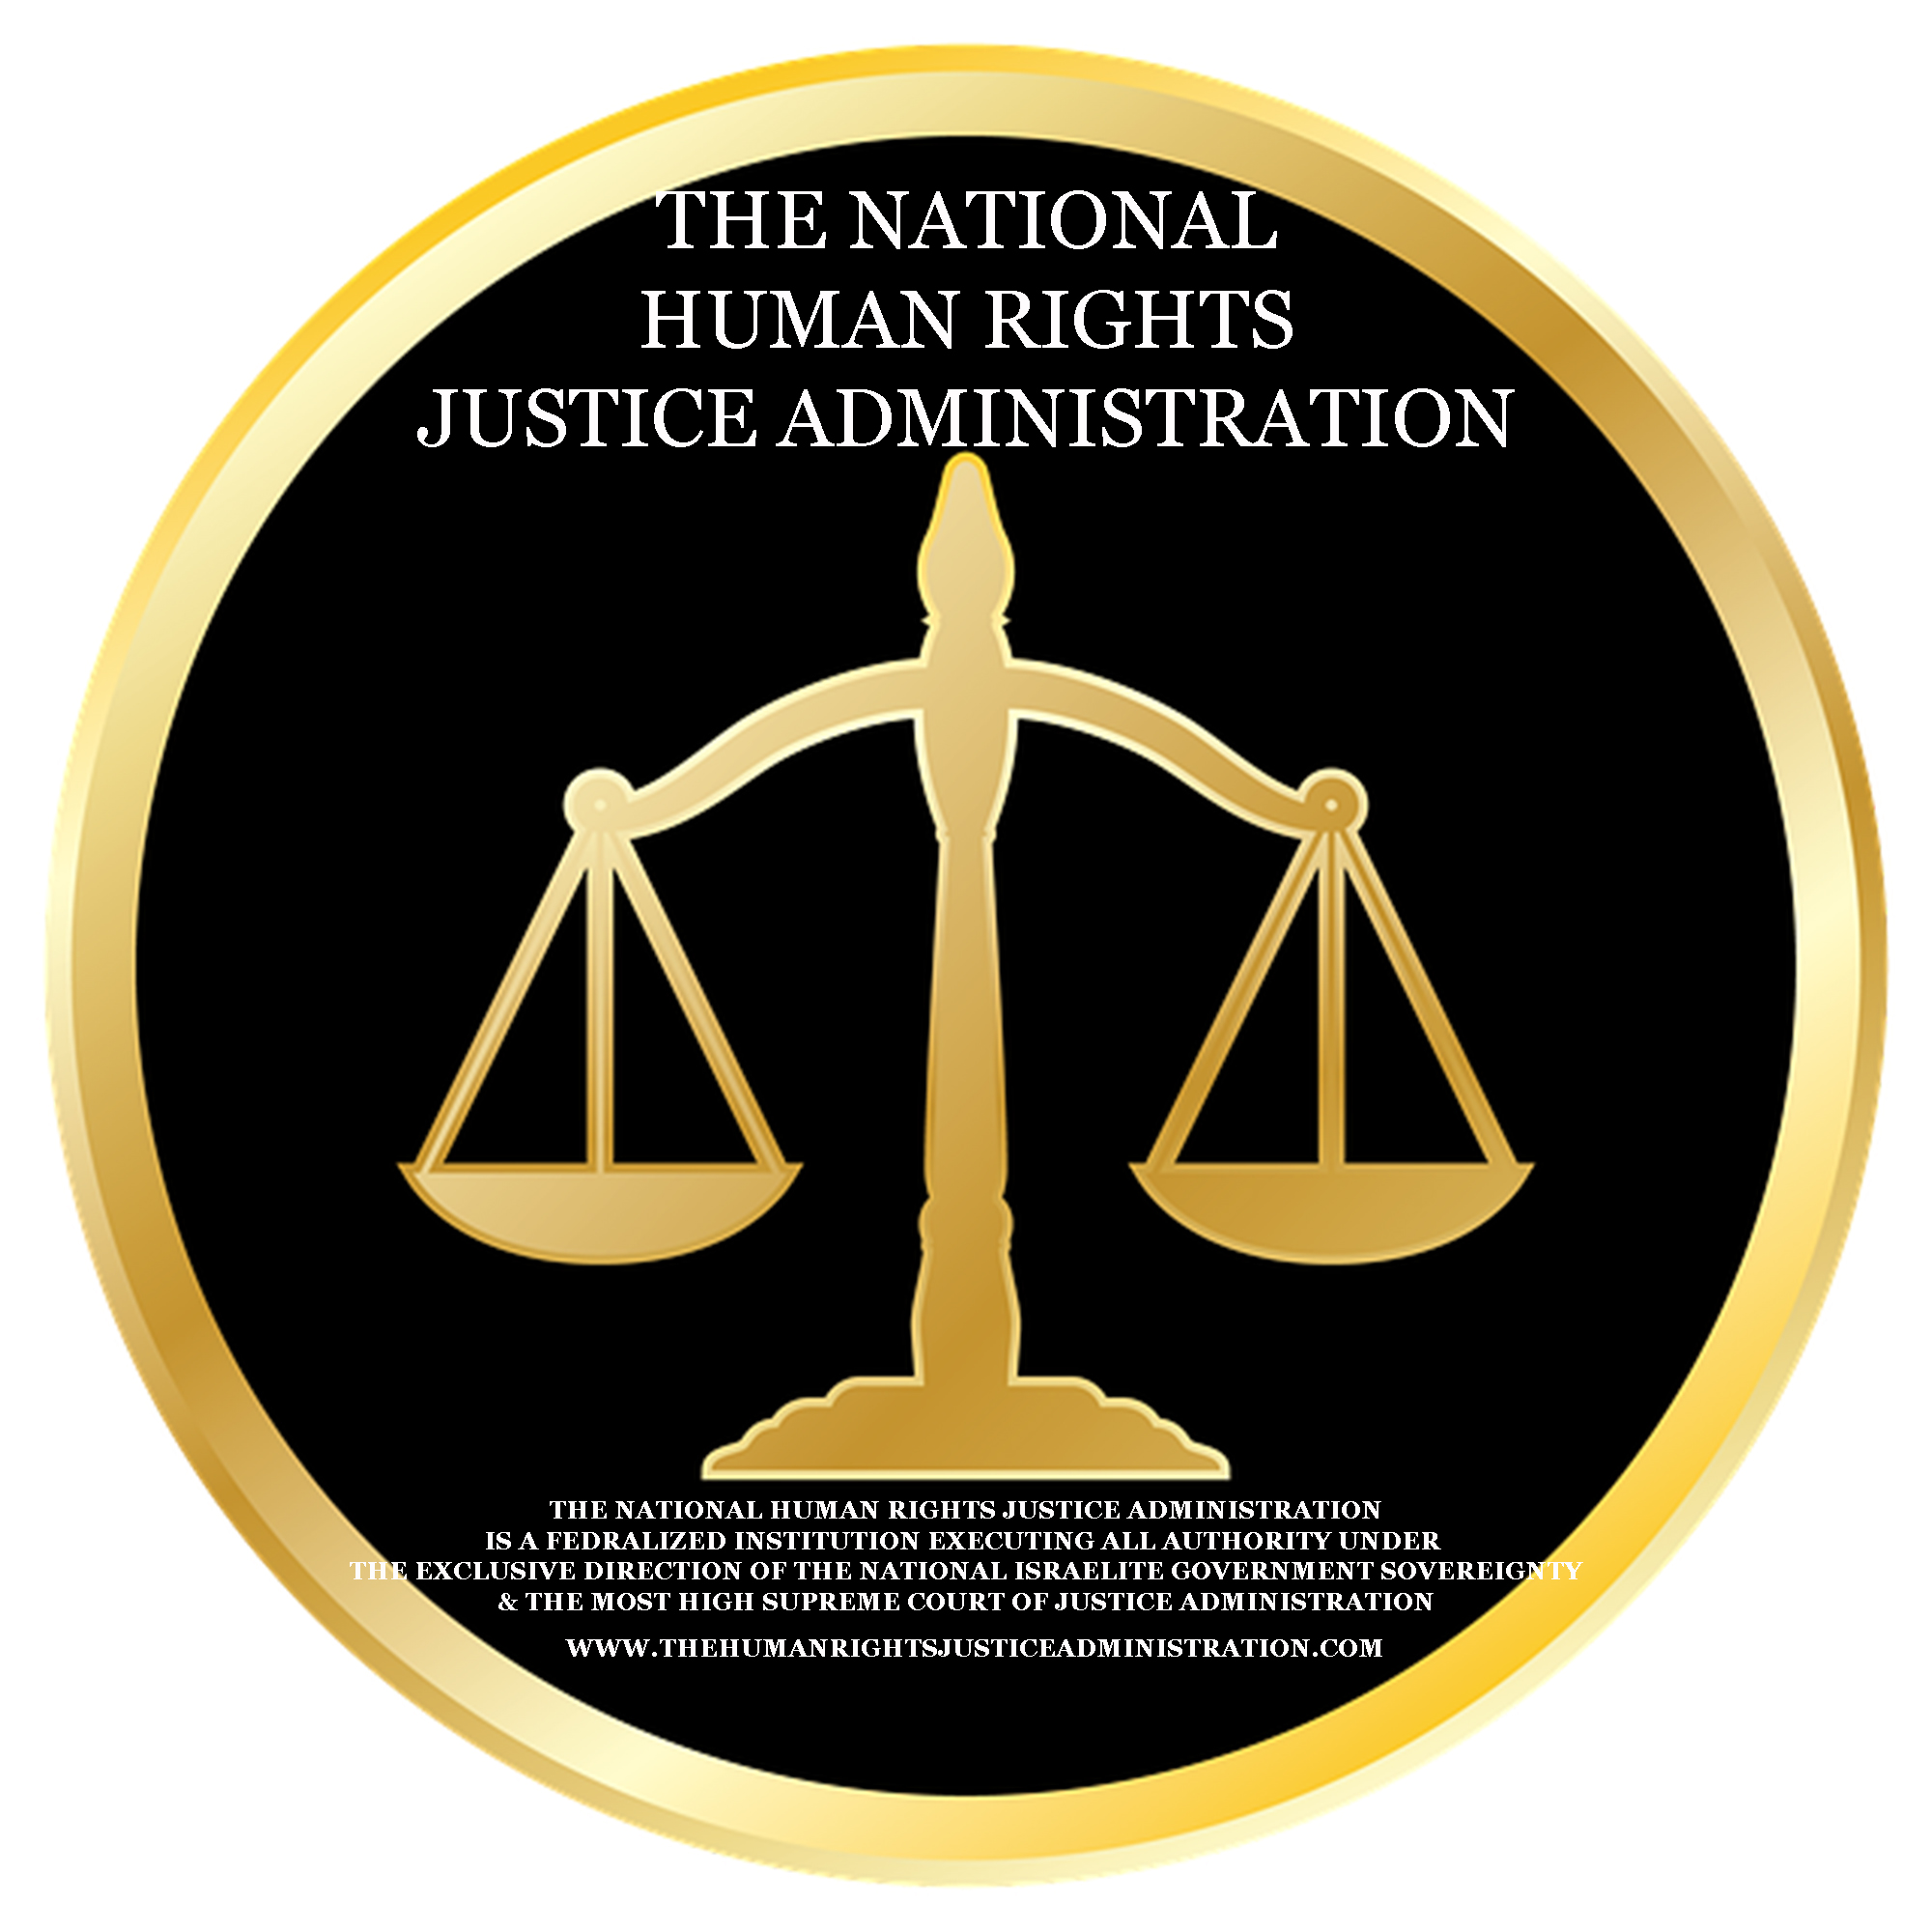 THE NATIONAL HUMAN RIGHTS JUSTICE ADMINISTRATION